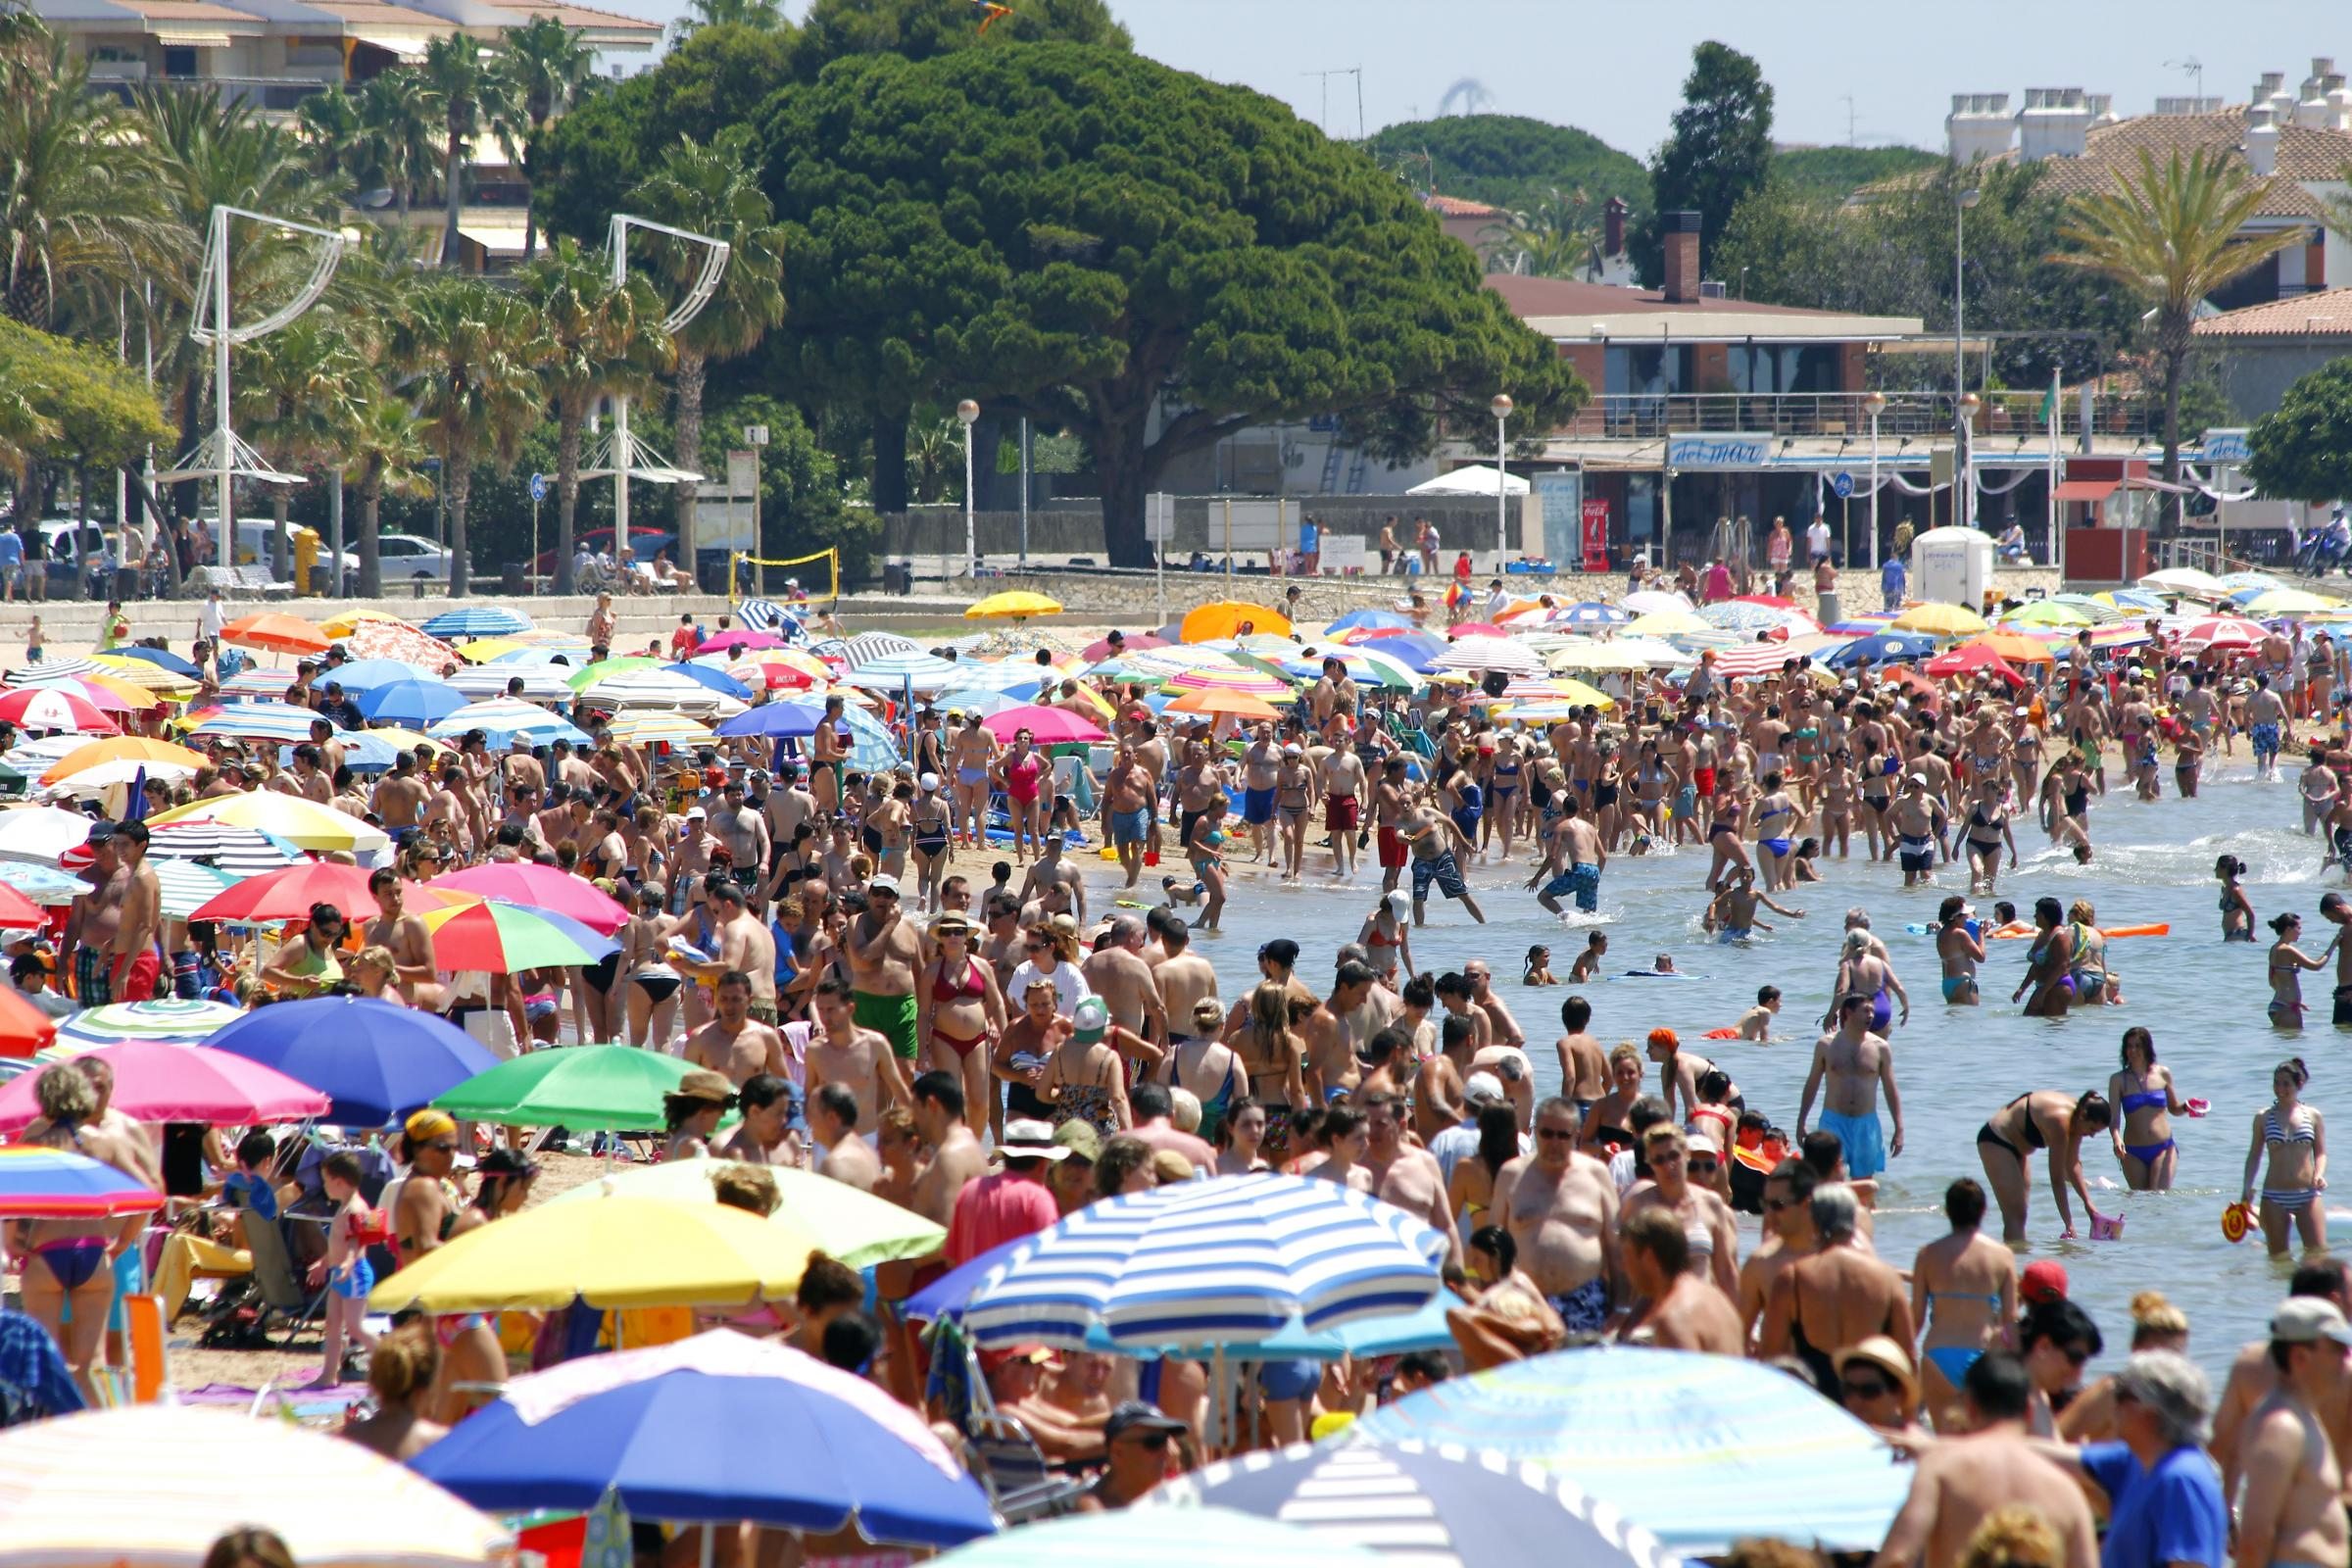 OPINION: Fun in the sun for us Brits abroad...